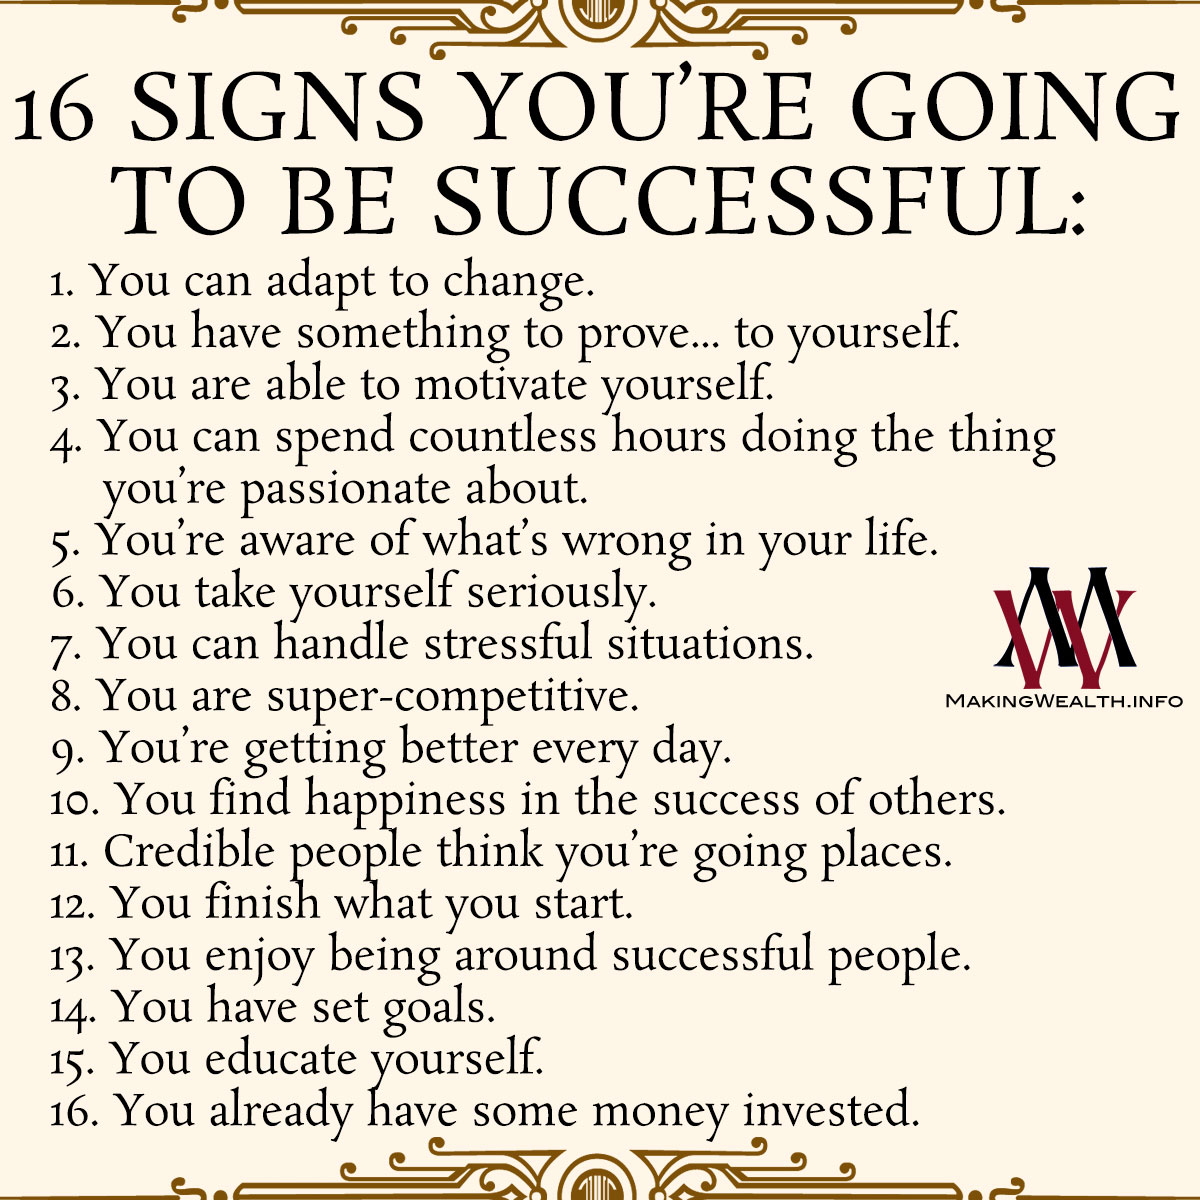 16 Signs You're Going To Be Successful